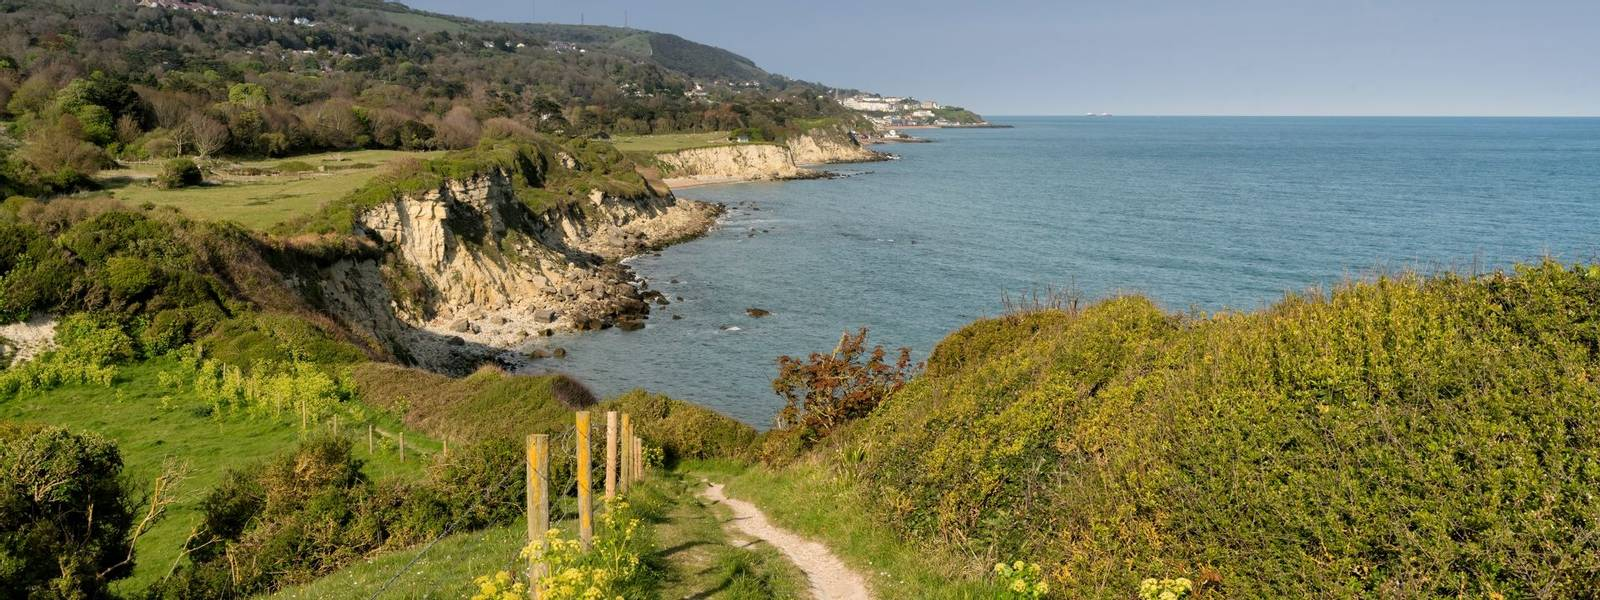 Sir Richard's Cove, St. Lawrence - Isle of Wight -Looking east towards Ventnor